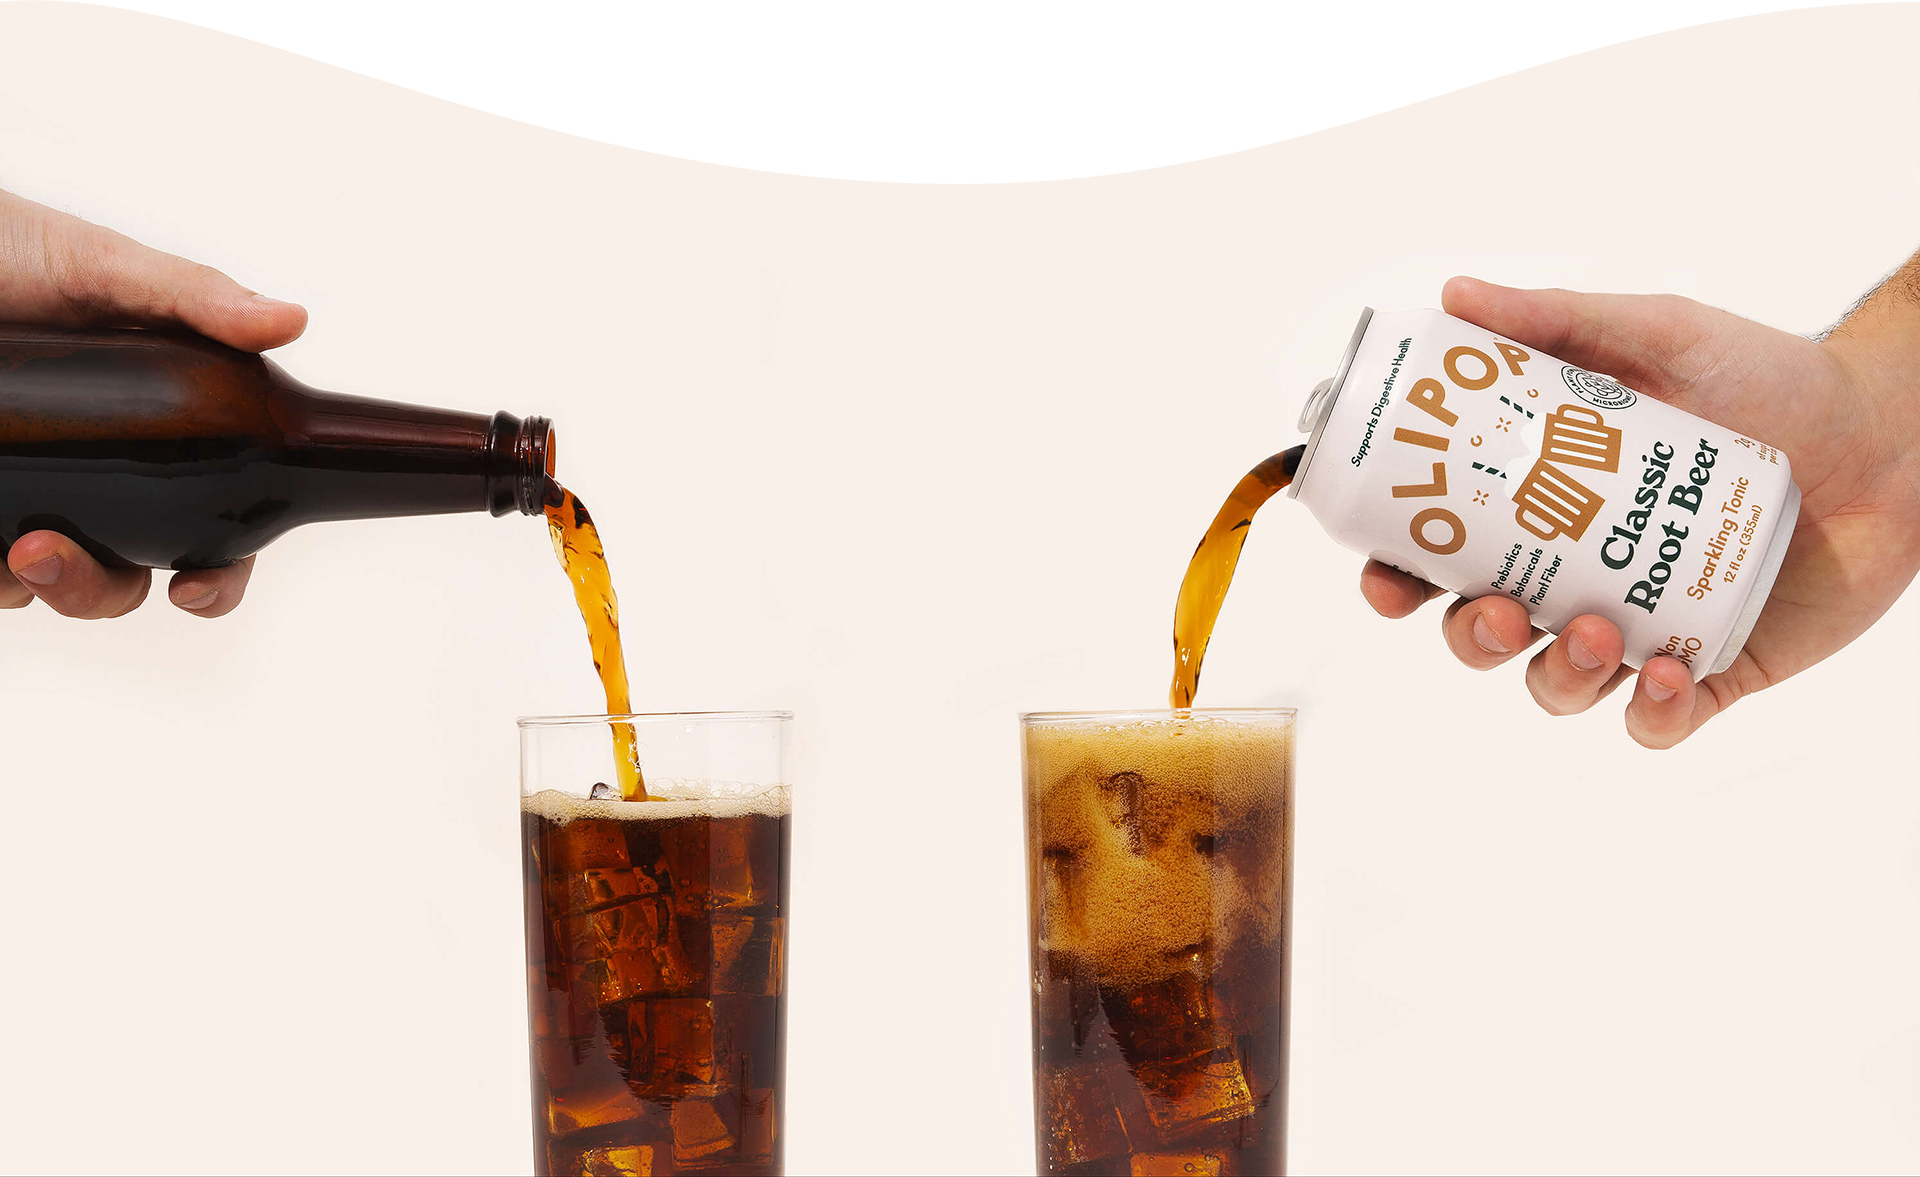 Olipop Root Beer being poured into a glass over ice next to a bottle of traditional root beer.